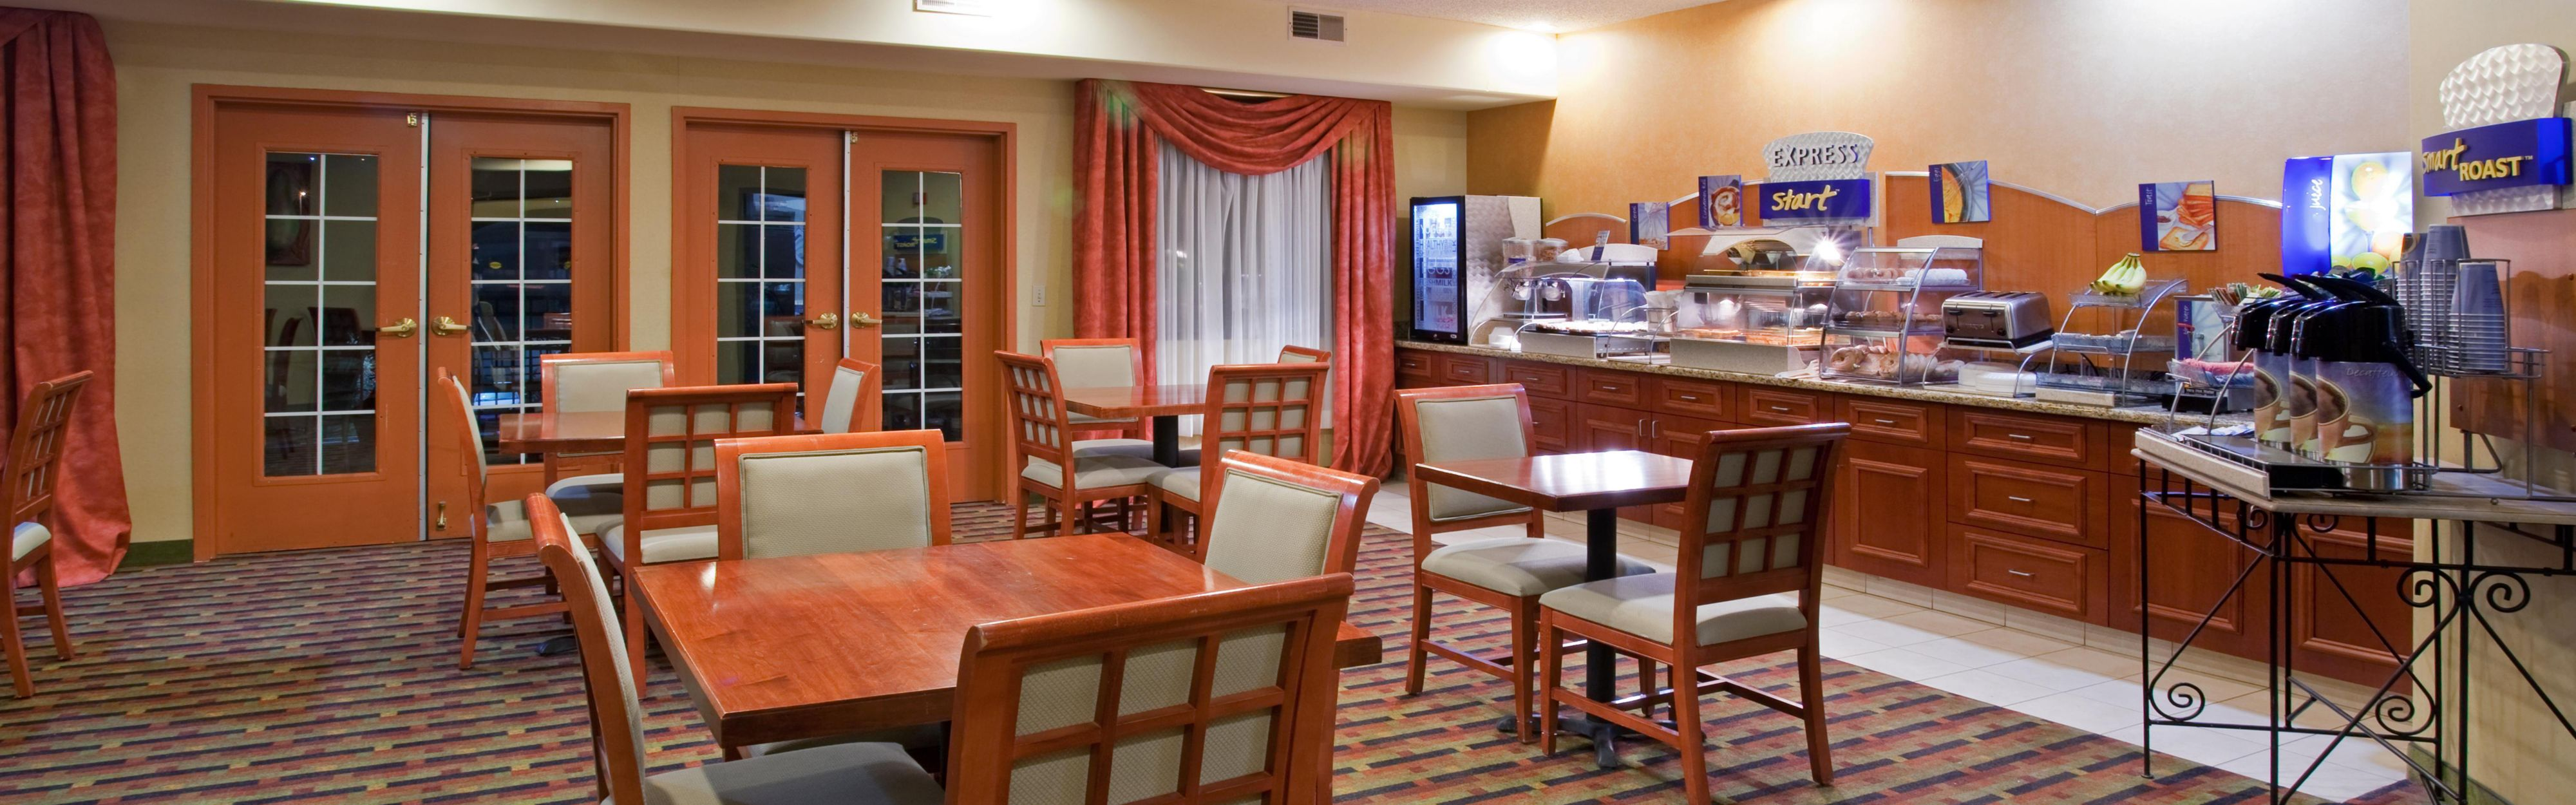 Holiday Inn Express & Suites Colorado Springs North image 2